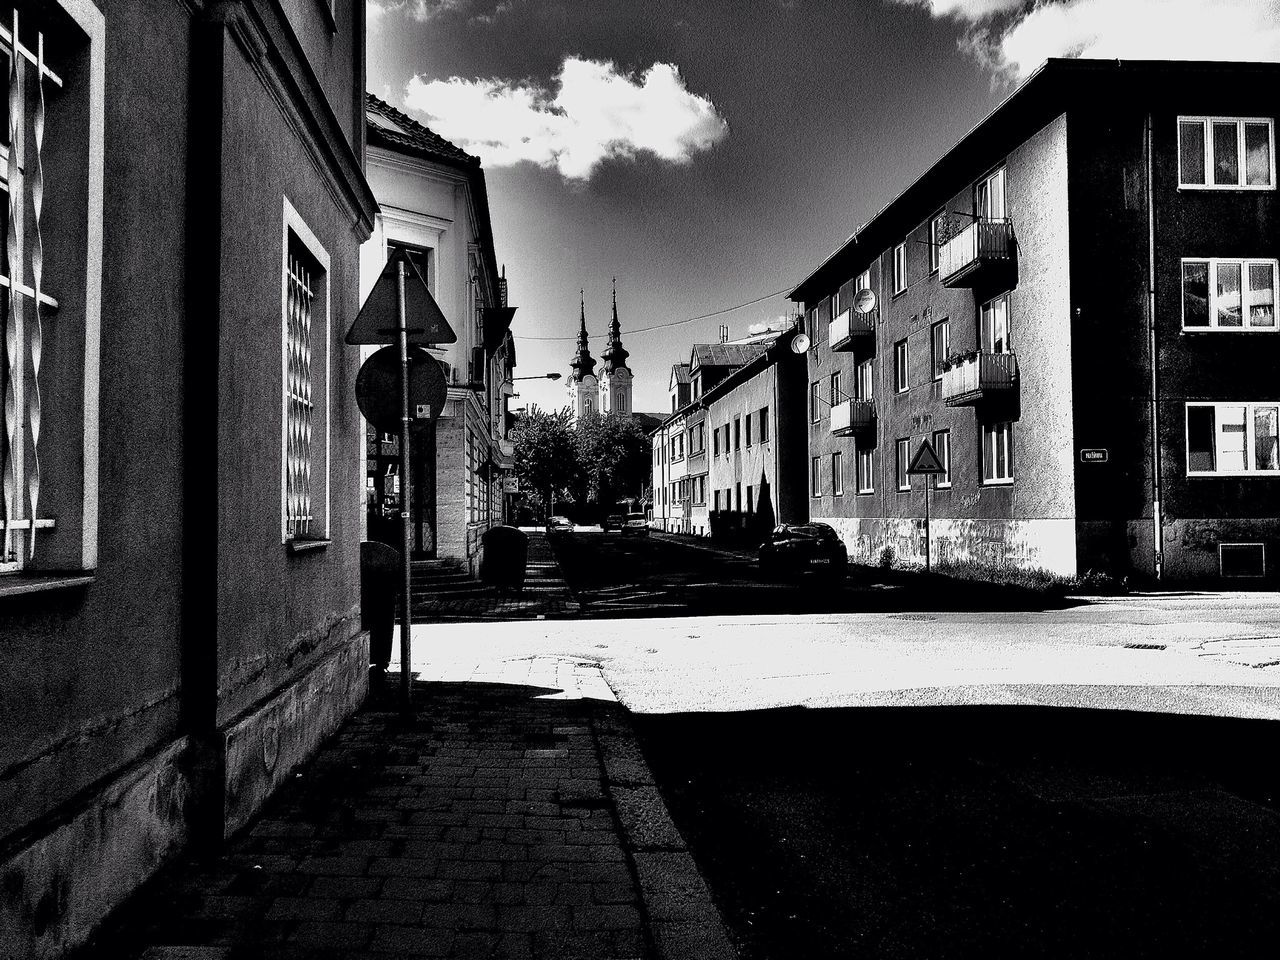 Blackandwhite Urban Geometry Light And Shadow Landscape streets of ostrava city :)